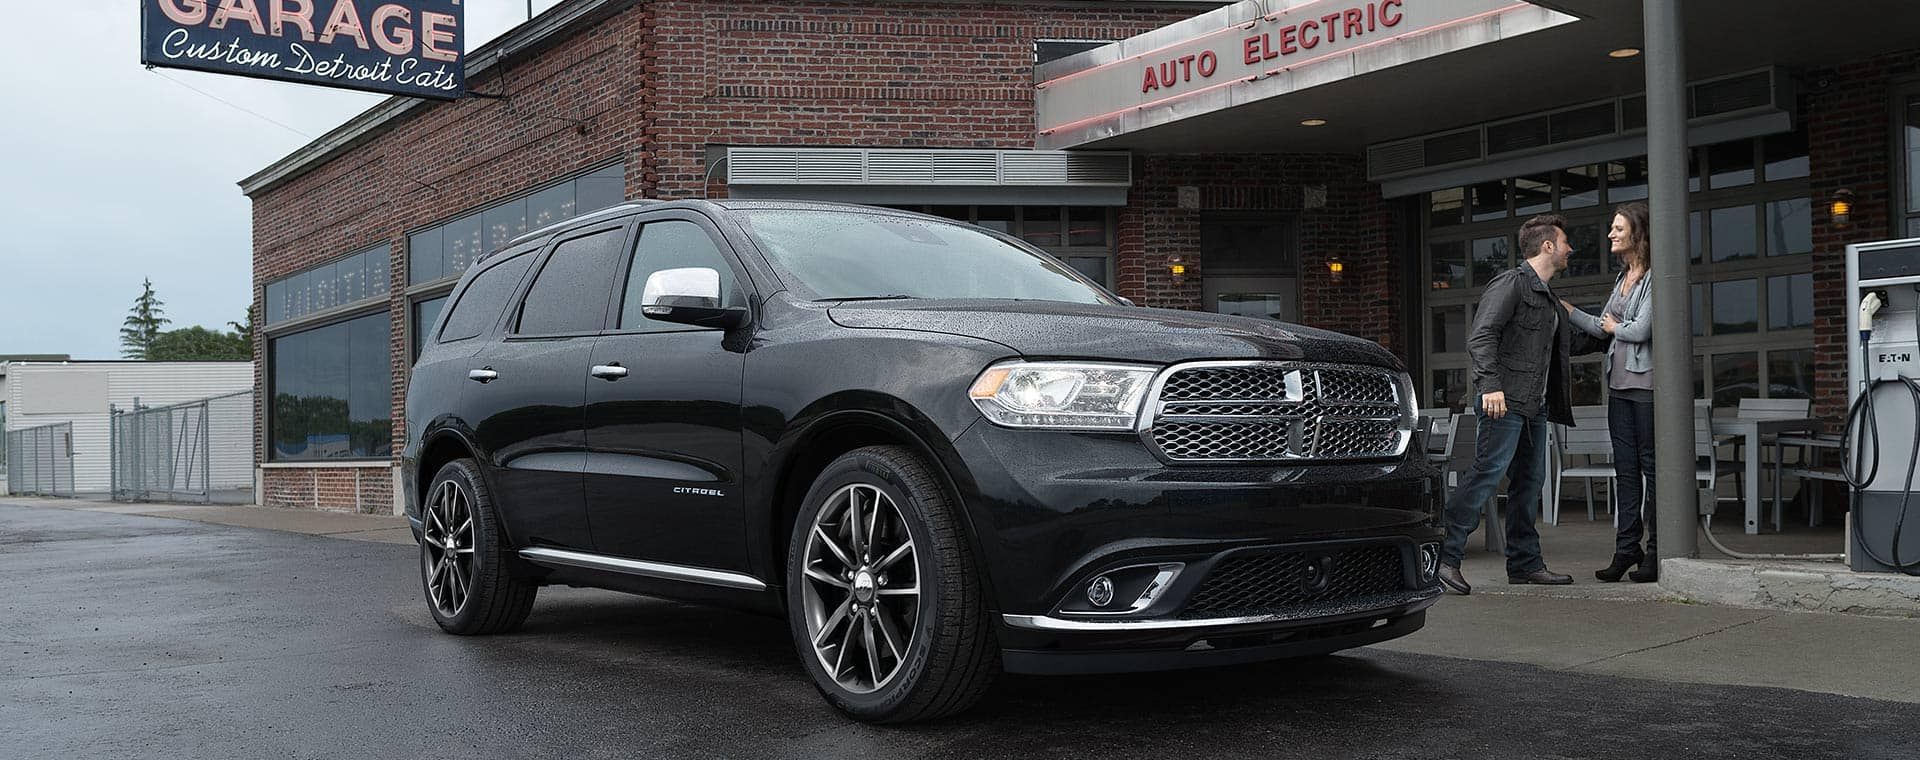 A 2020 Dodge Durango Citadel parked outside a retro-styled mechanic's shop turned restaurant.